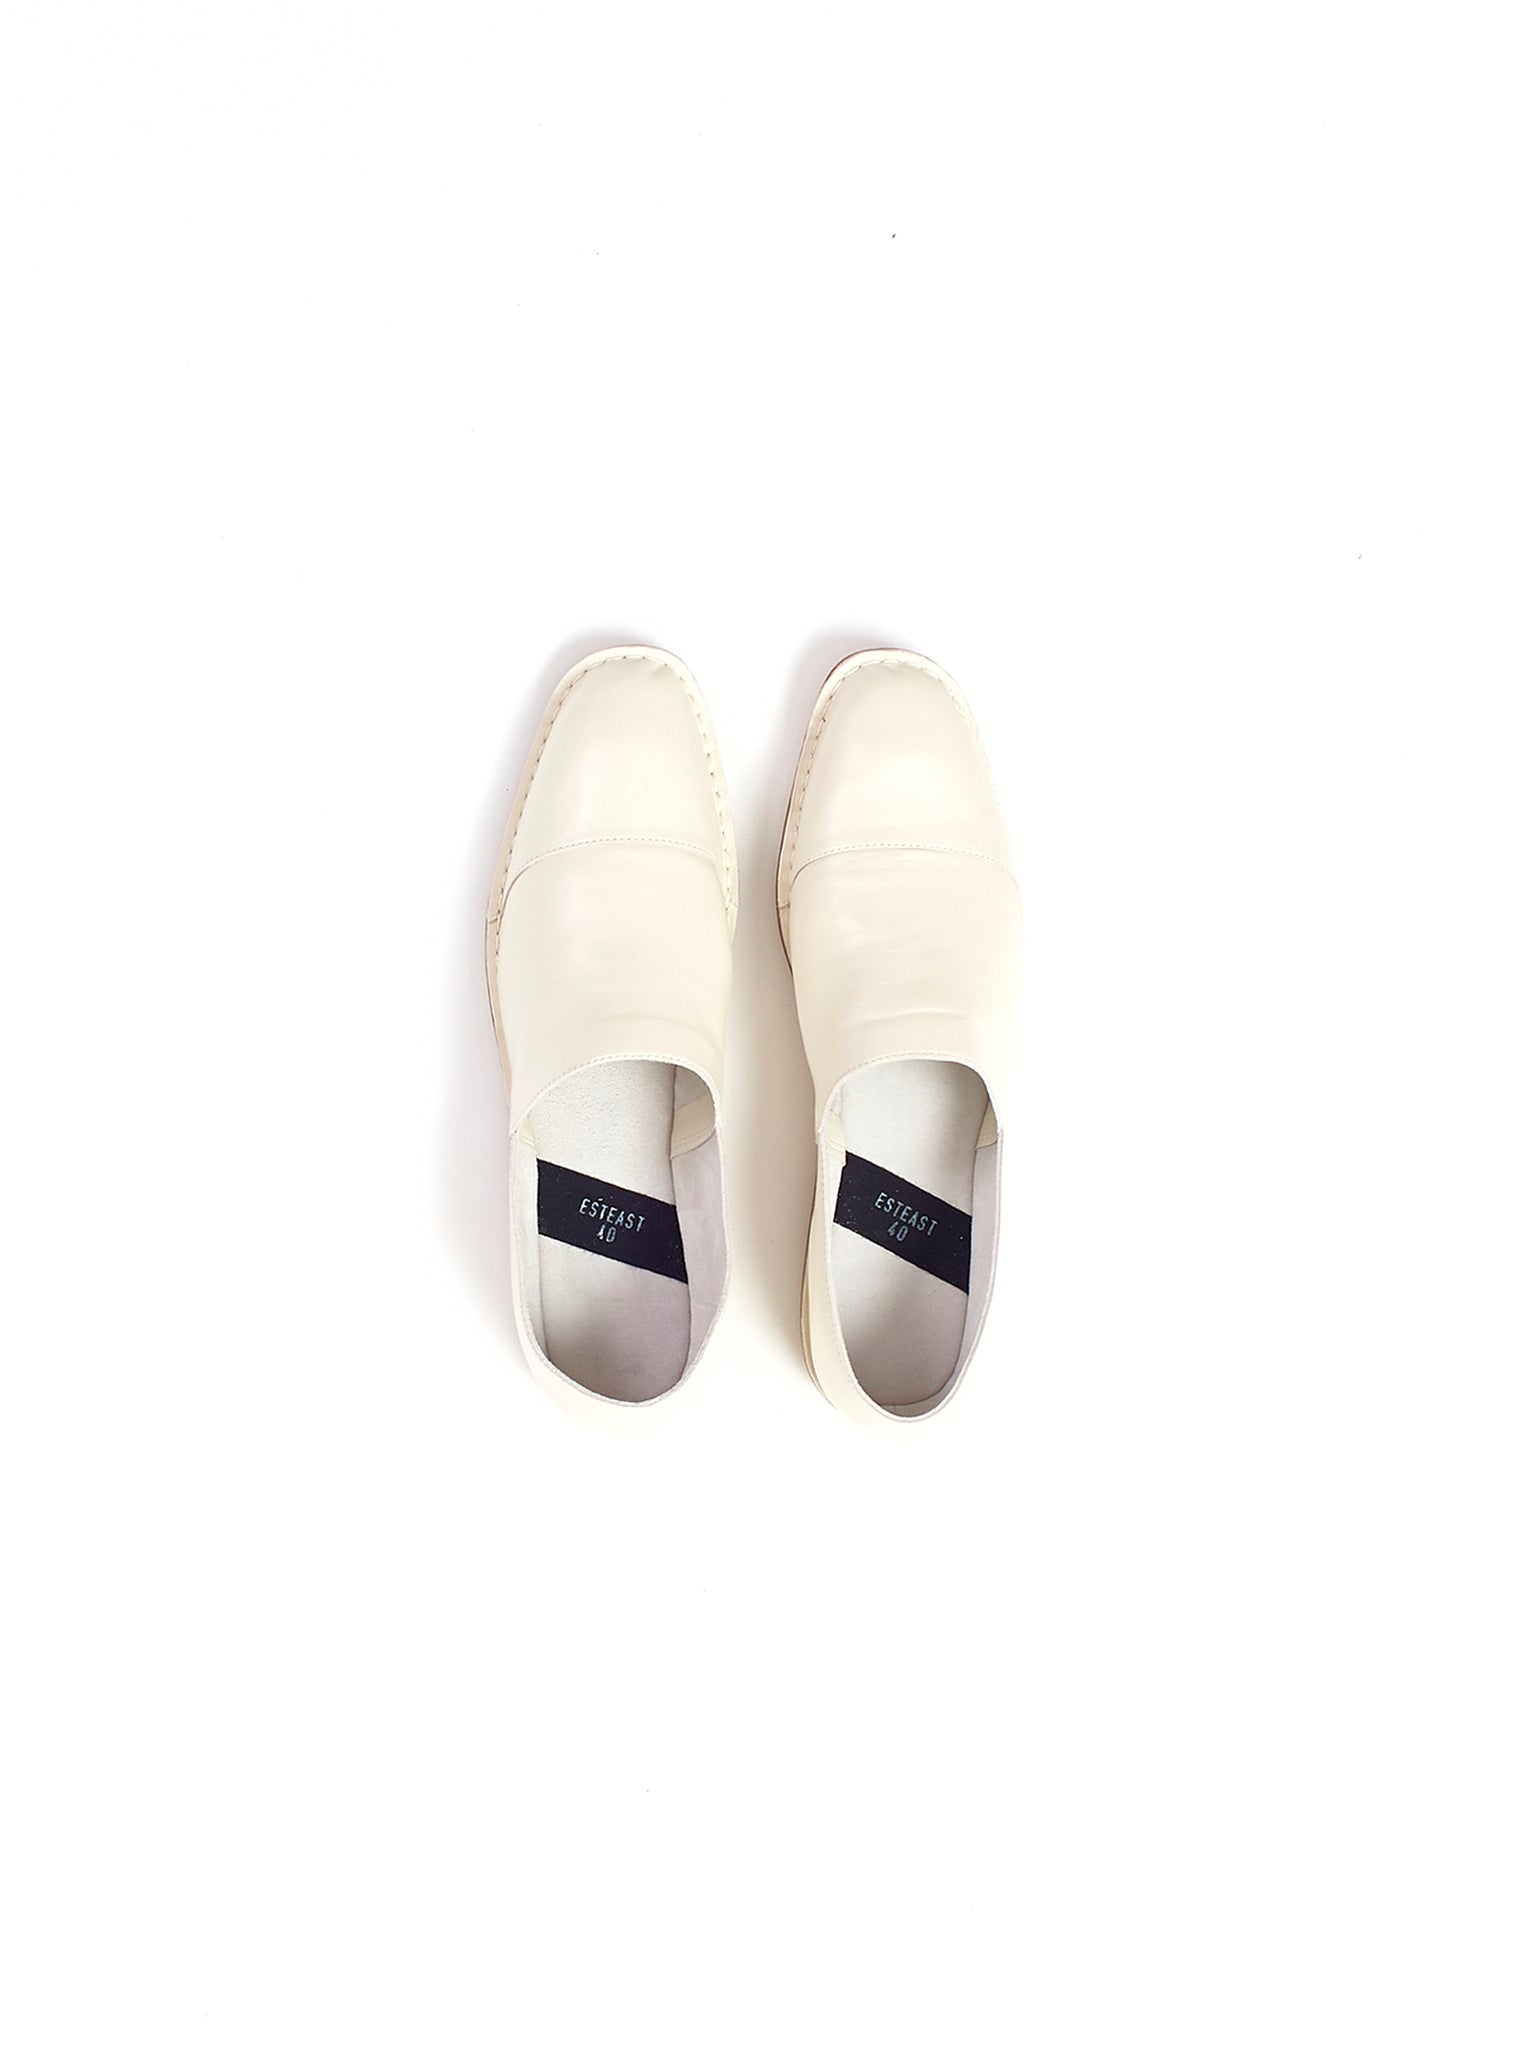 white slip on shoes